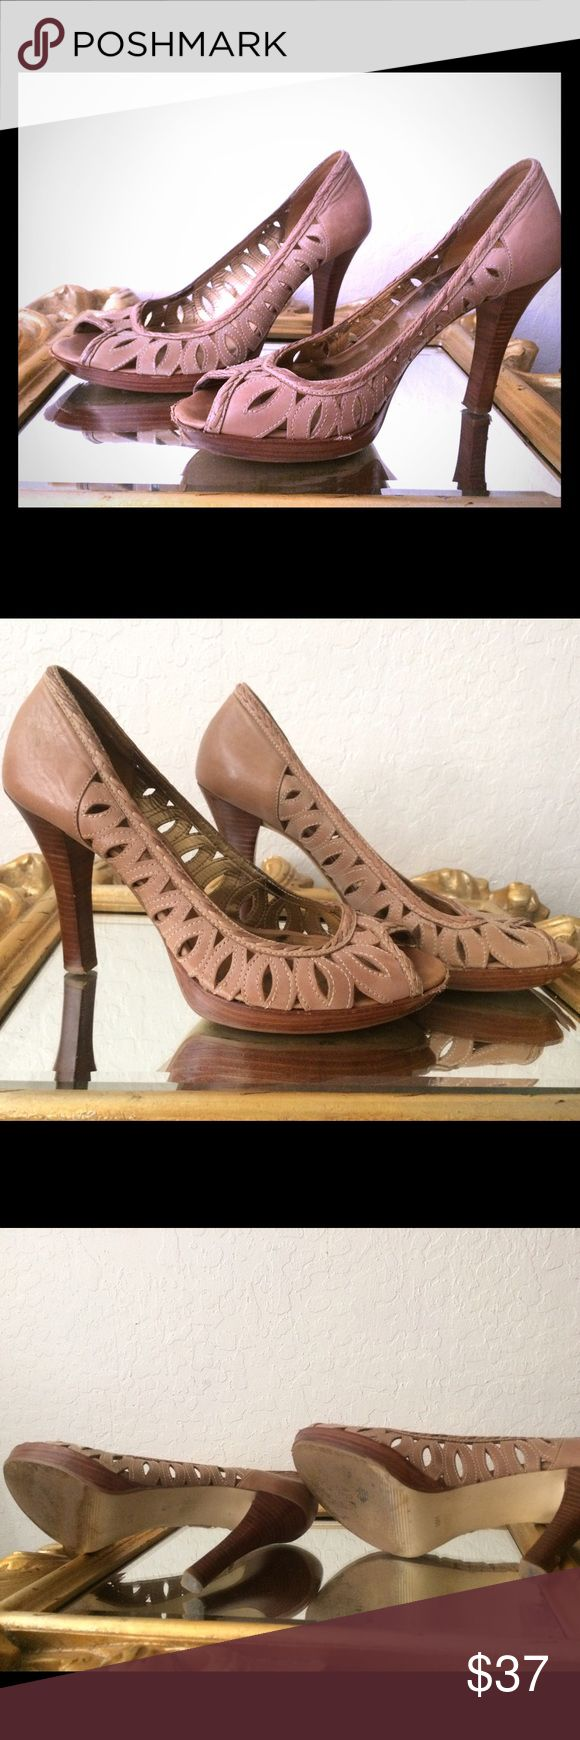 Guess Marciano Nude Pumps size 9.5 Guess Marciano Nude / Camel braided Pumps / high heels 3 inch 9.5 narrow Guess by Marciano Shoes Heels